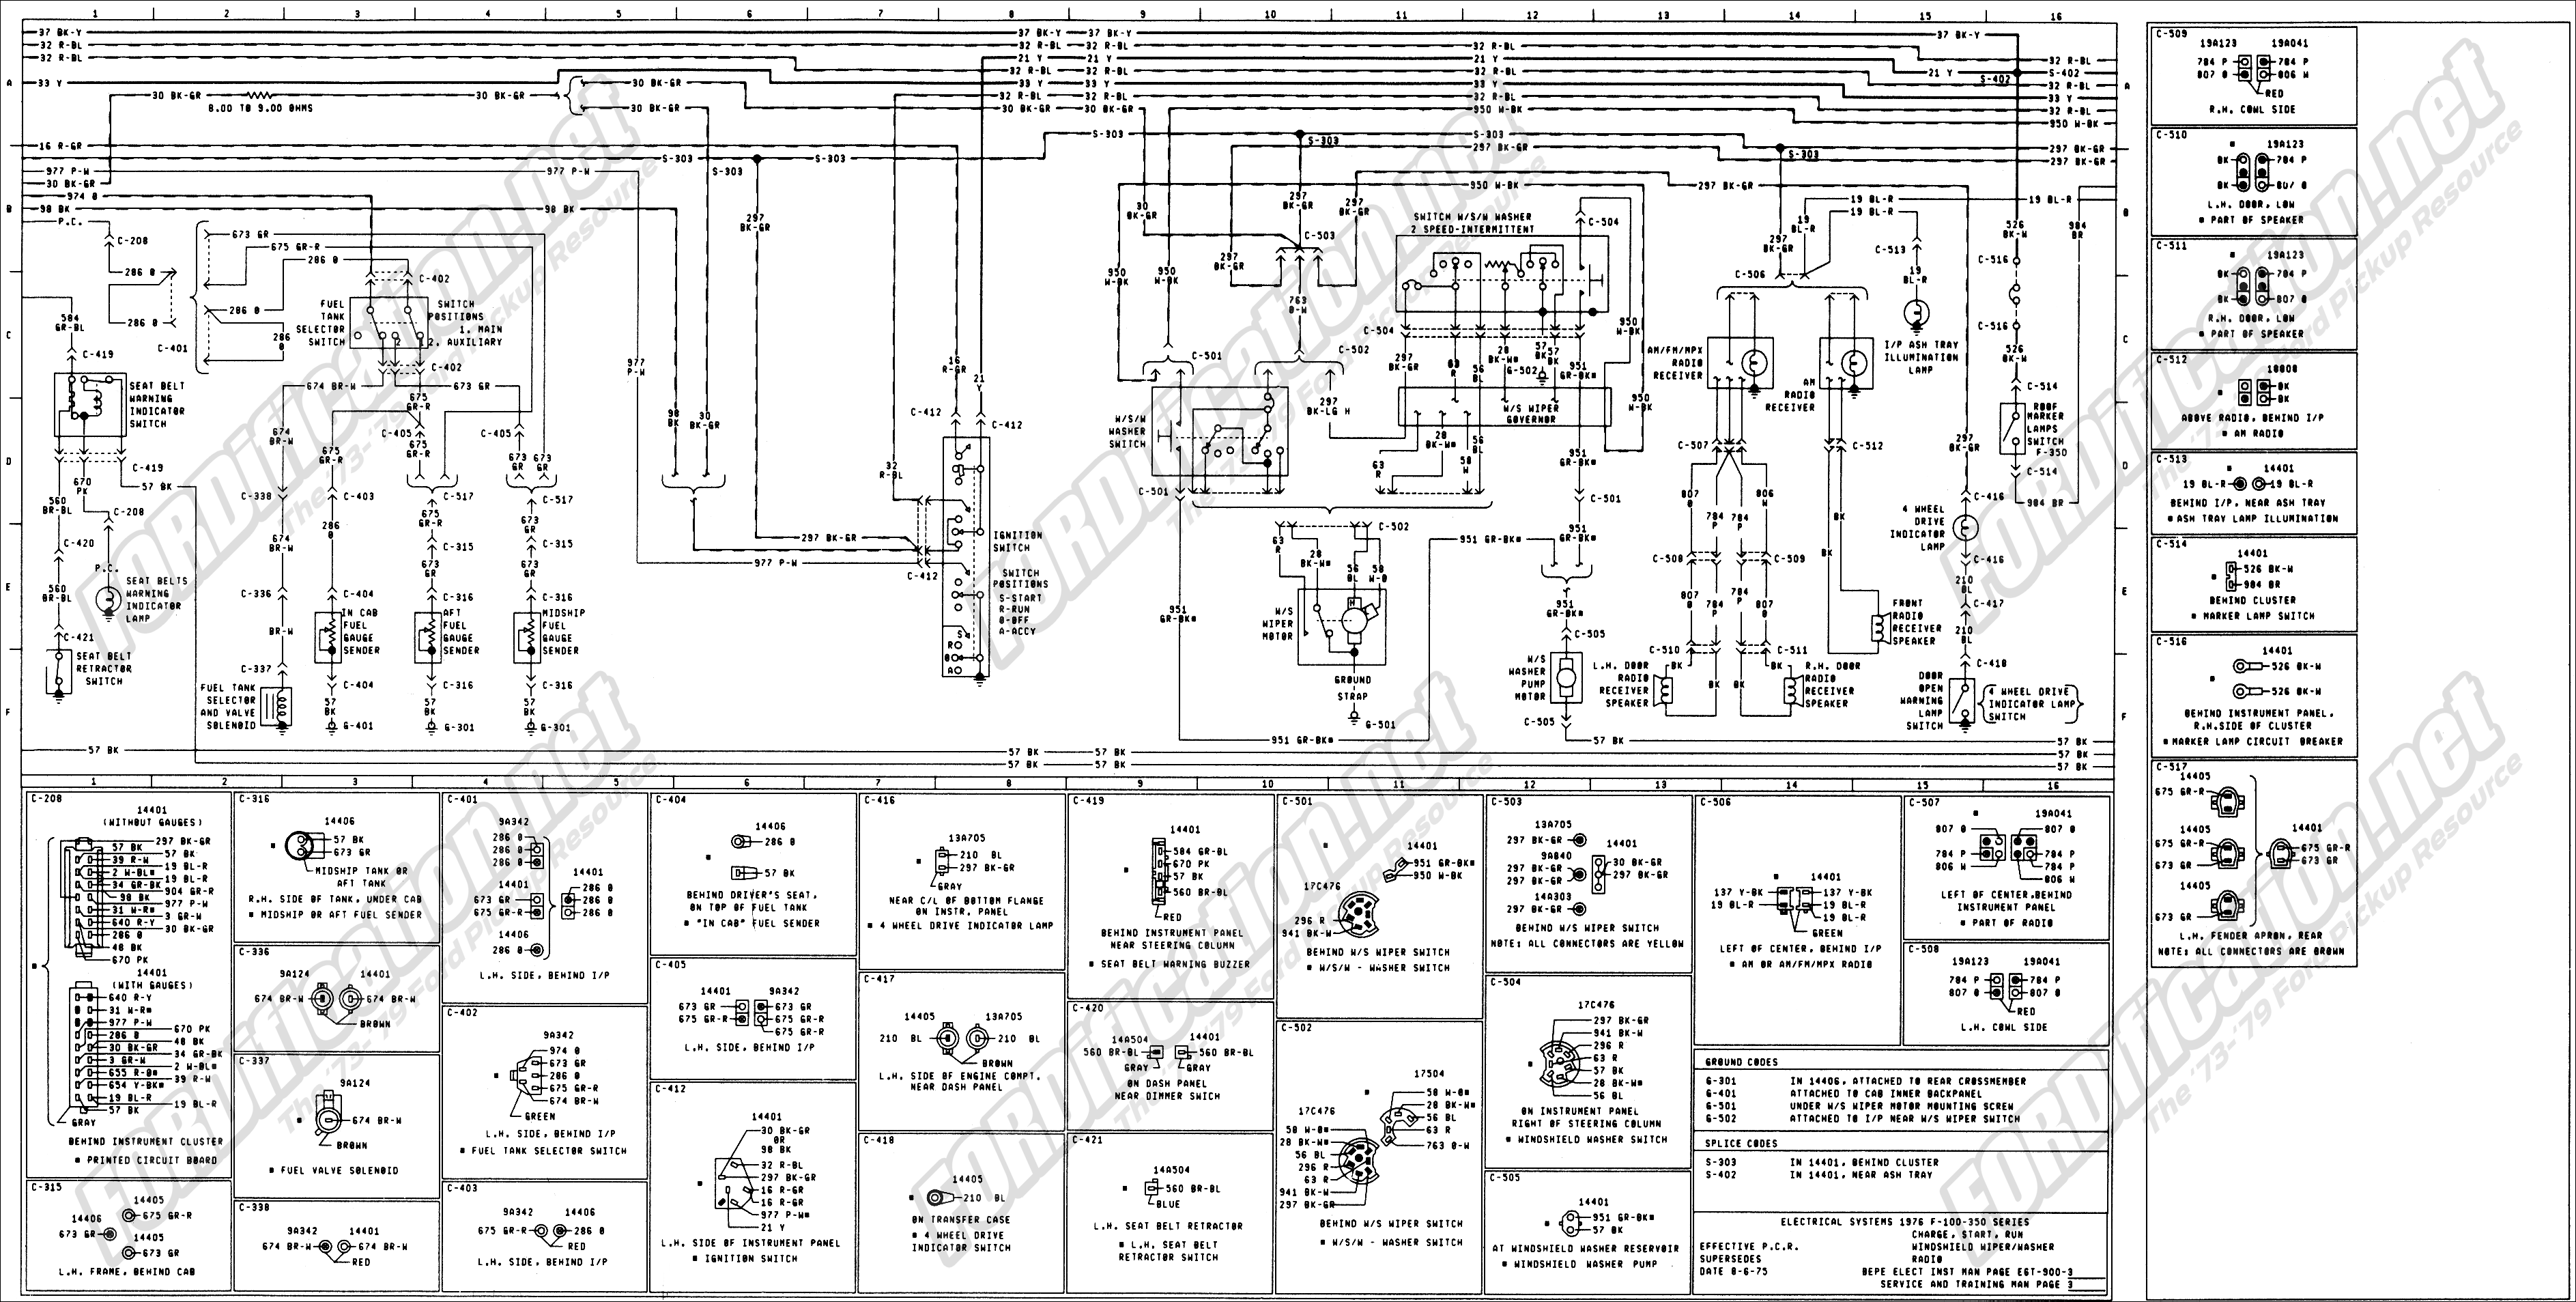 Wiring Diagram 1970 Ford F 100 Custom Third Level Drag Car El Camino 1973 1975 Todays 1966